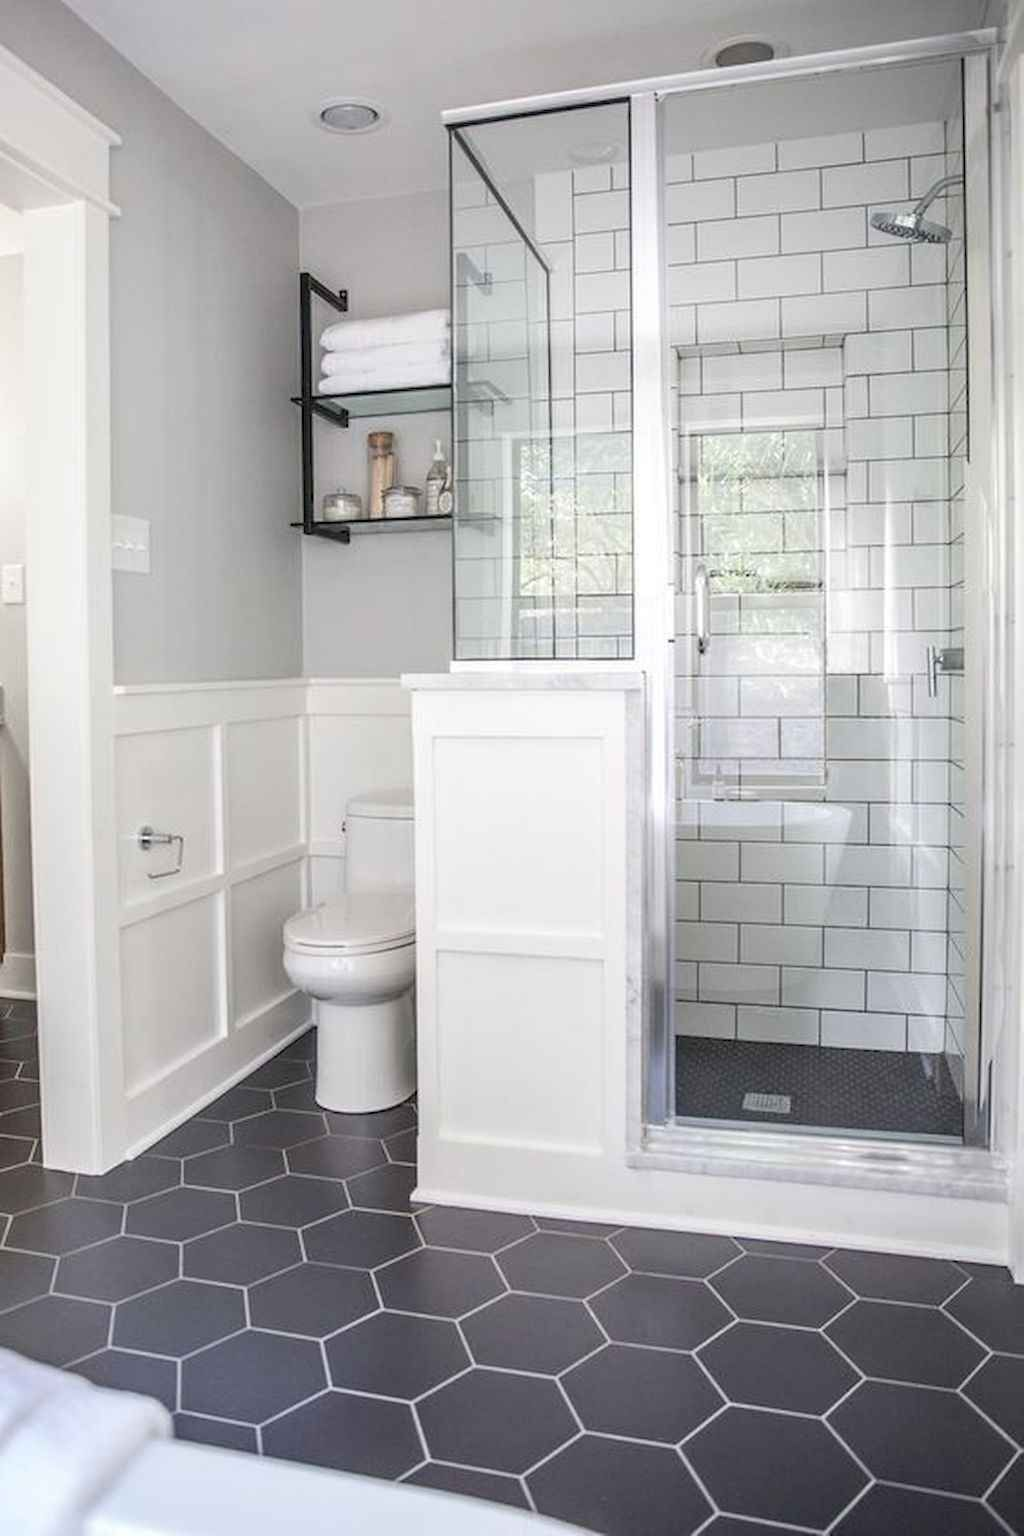 34 Small Master Bathroom Remodel Ideas On A Budget Domakeover Com Full Bathroom Remodel Small Master Bathroom Small Full Bathroom